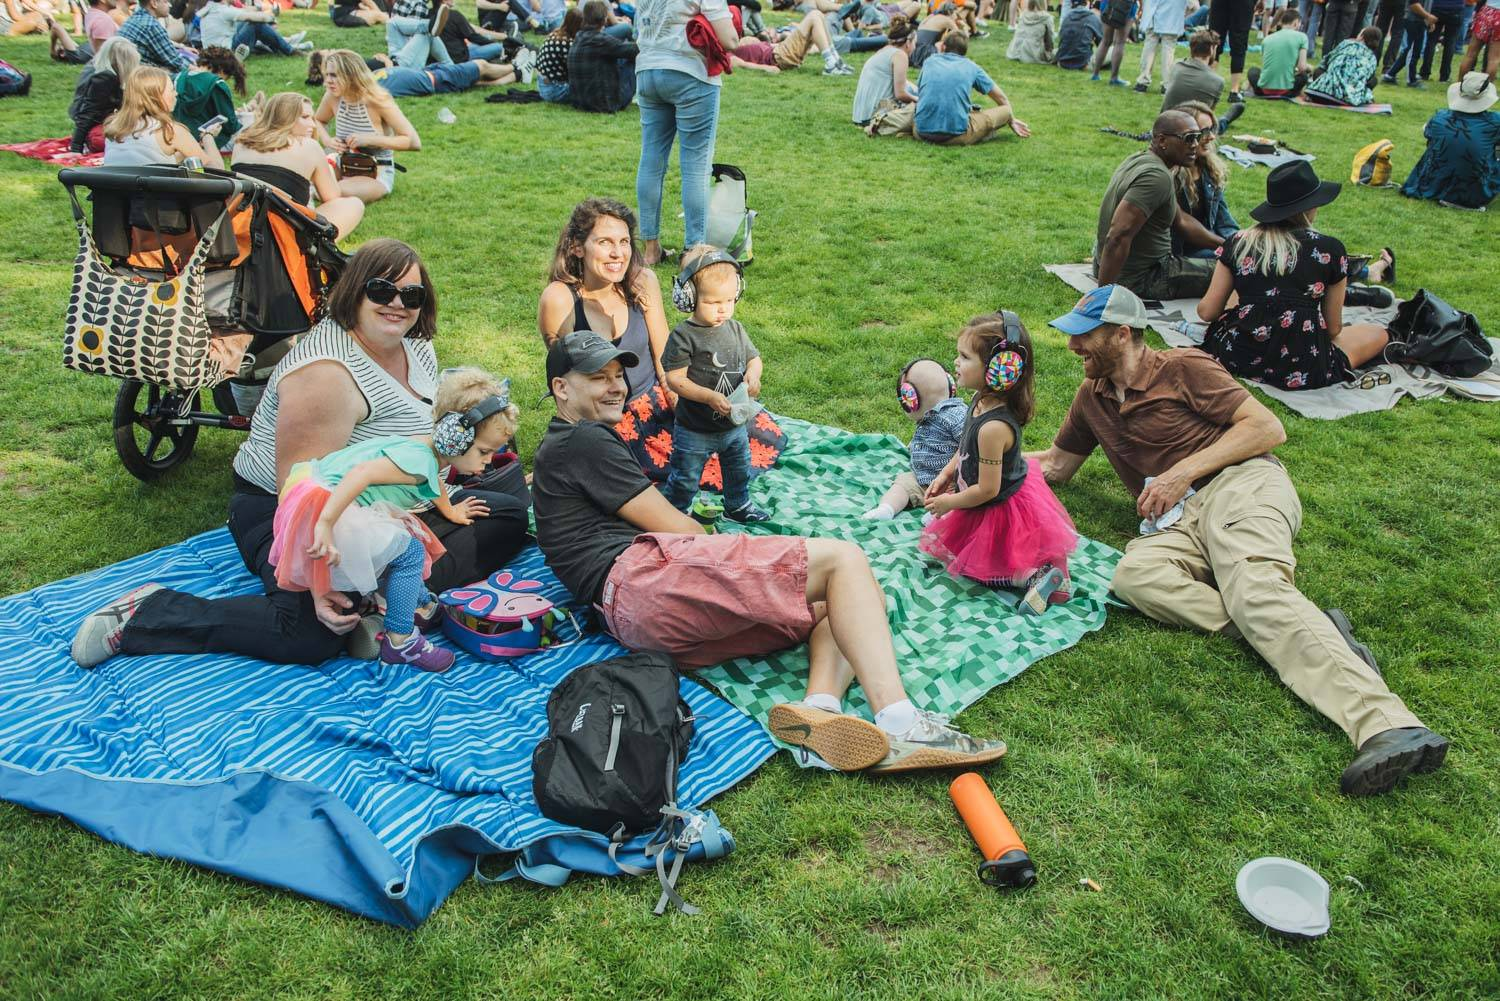 Music Fans at the Bumbershoot Music Festival 2018, Seattle WA, Sept 2 2018. Pavel Boiko photo.